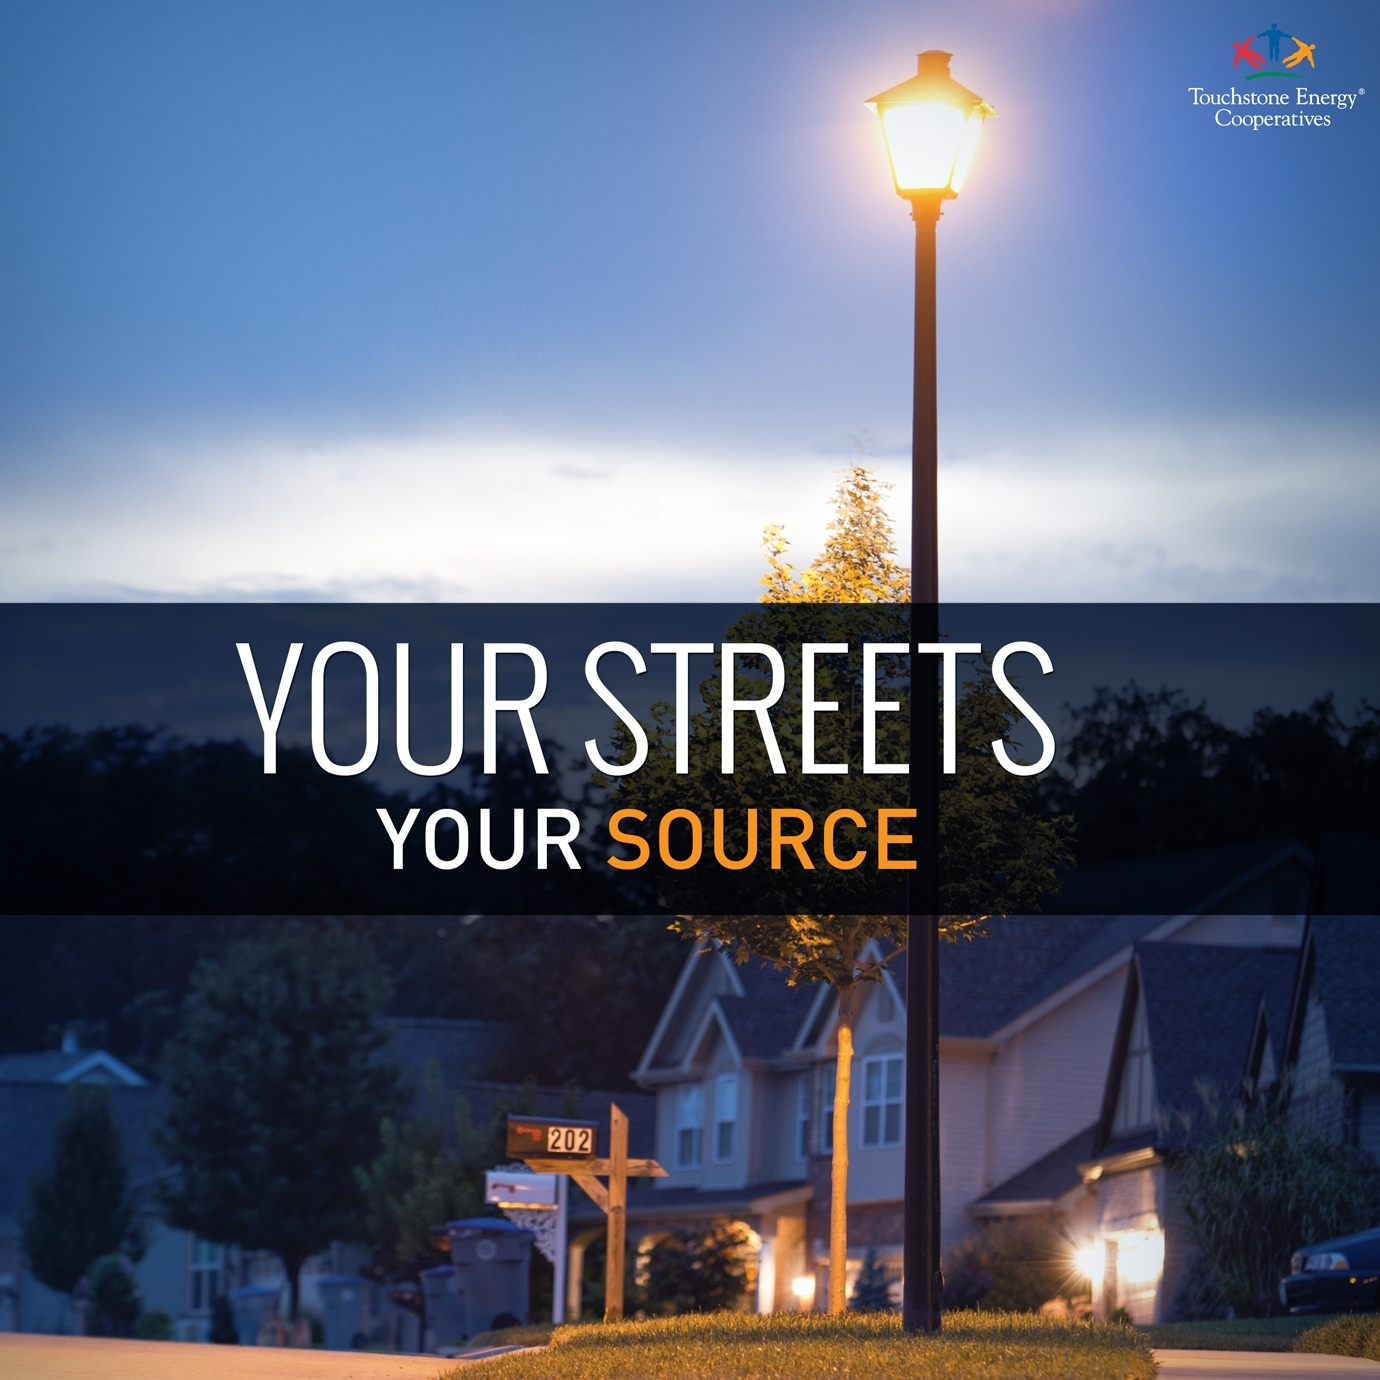 Image features a residential street-scape at dusk with the street lights turned on.